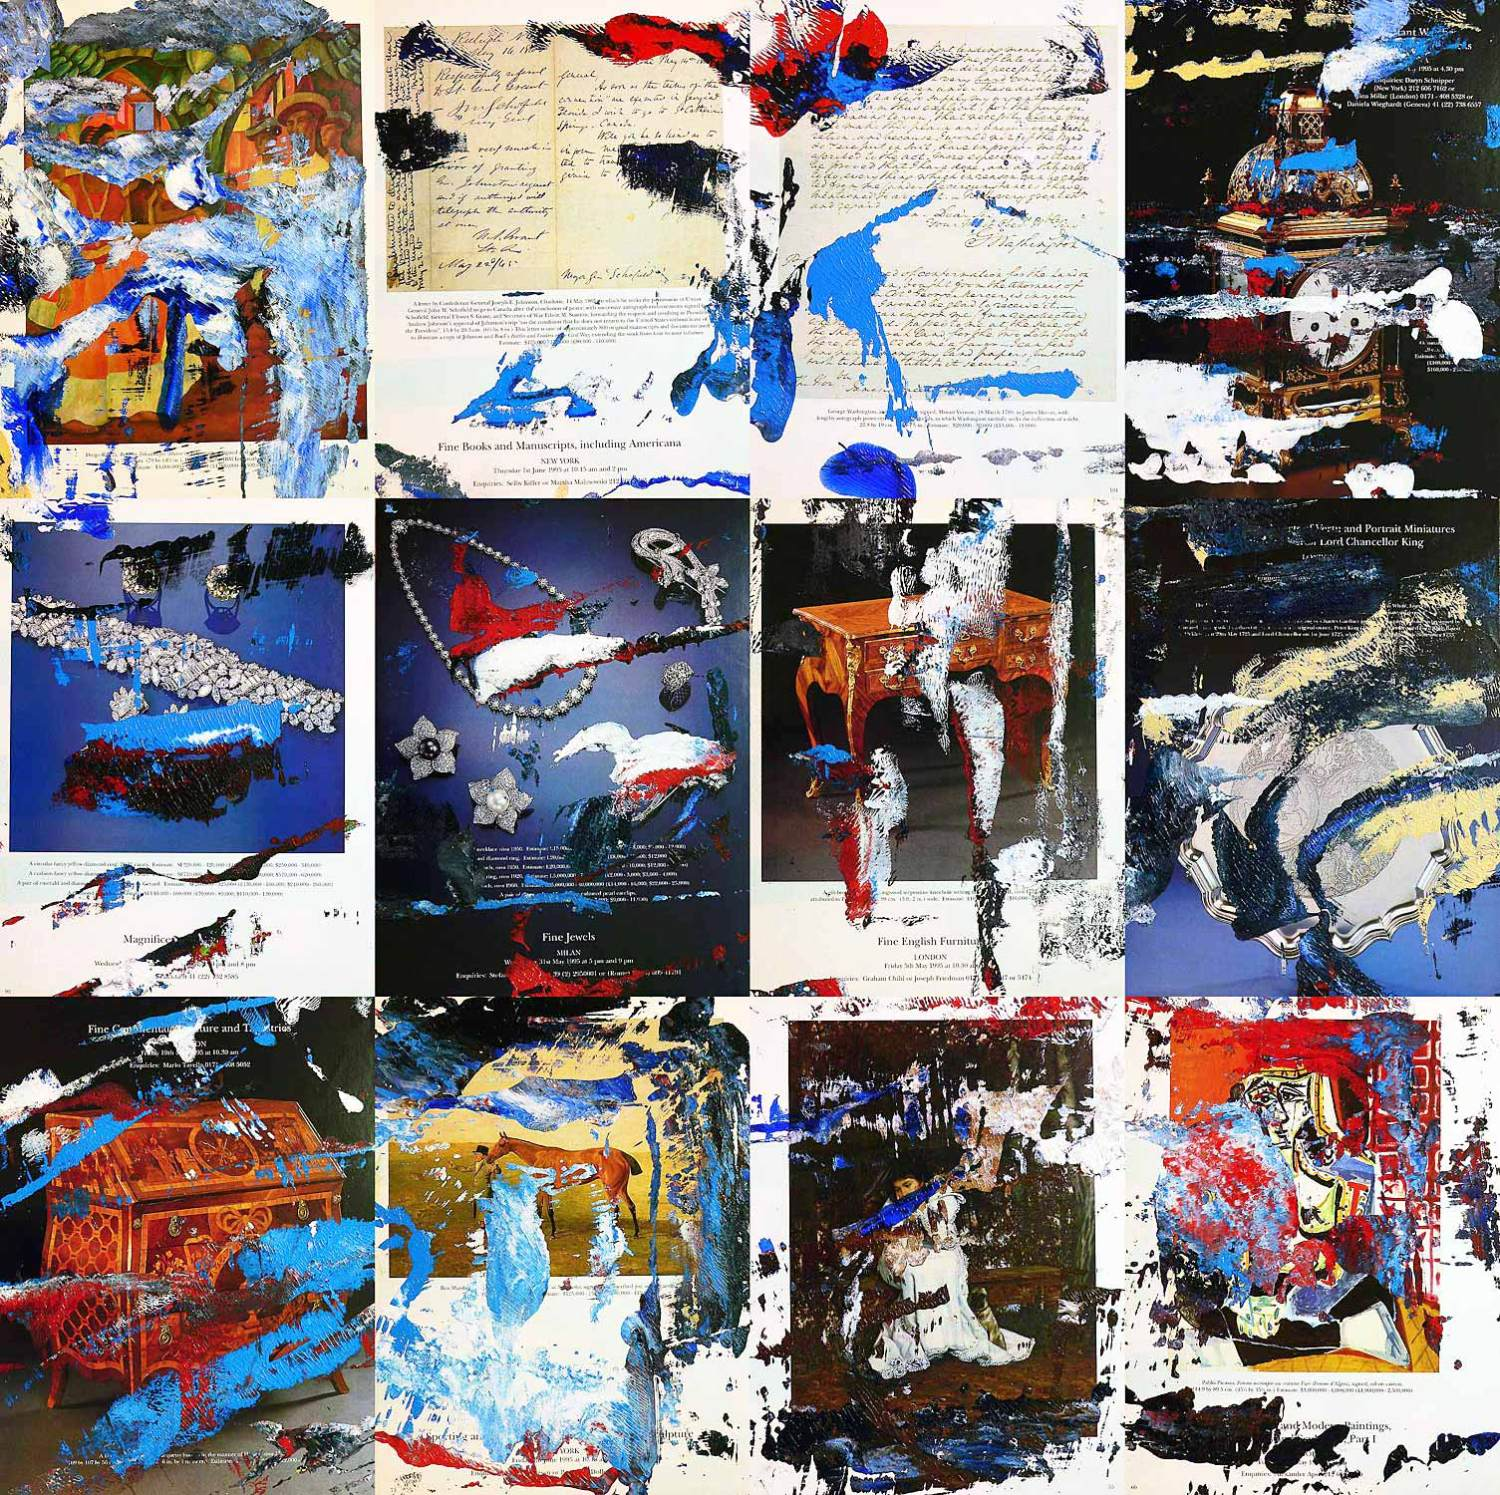 sotheby´s 0212 - series 3 - 29 x 22 cm each (12 parts) - acrylic on sotheby´s catalogue pages mounted on wood boxes - 2012